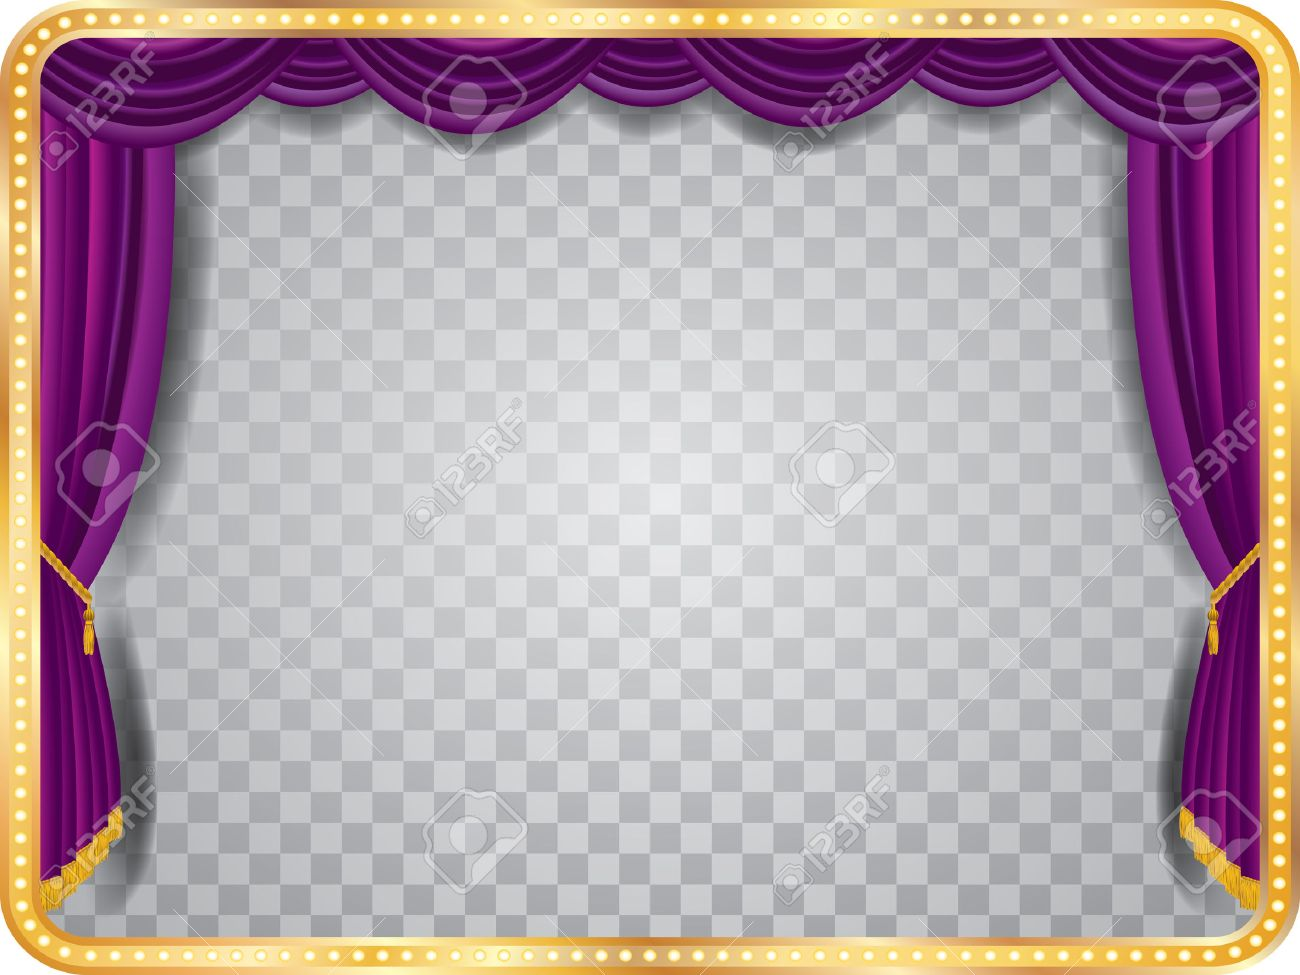 vector stage with purple curtain, golden frame, bulb lamps and transparent shadow - 45707731